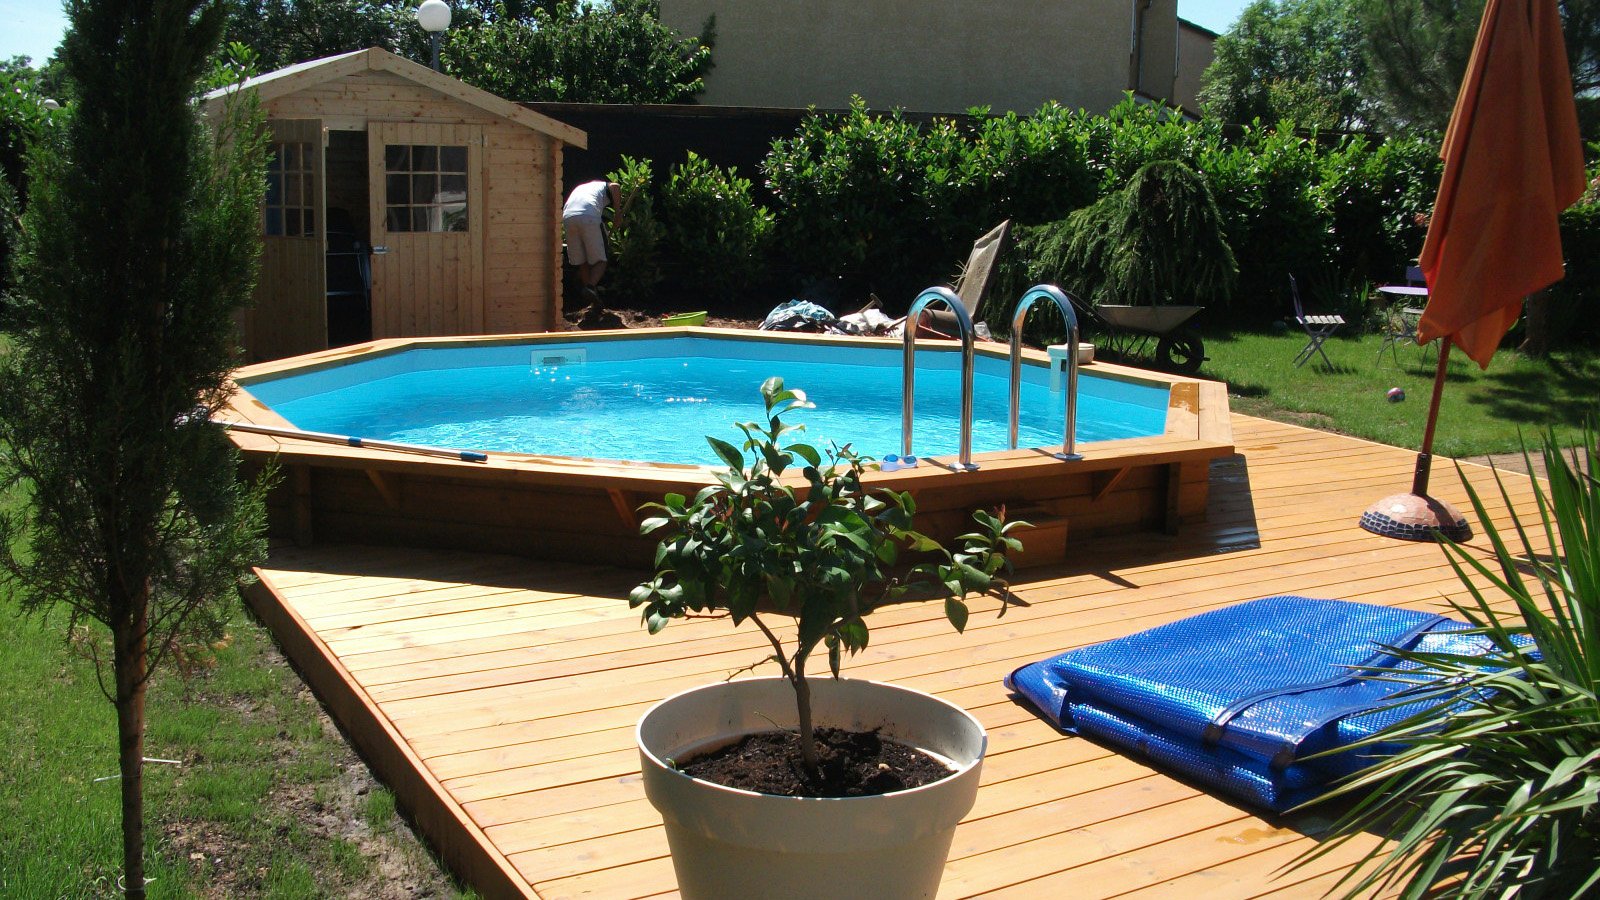 Amenagement piscine bois semi enterree - Piscine bois semi enterree pas cher ...